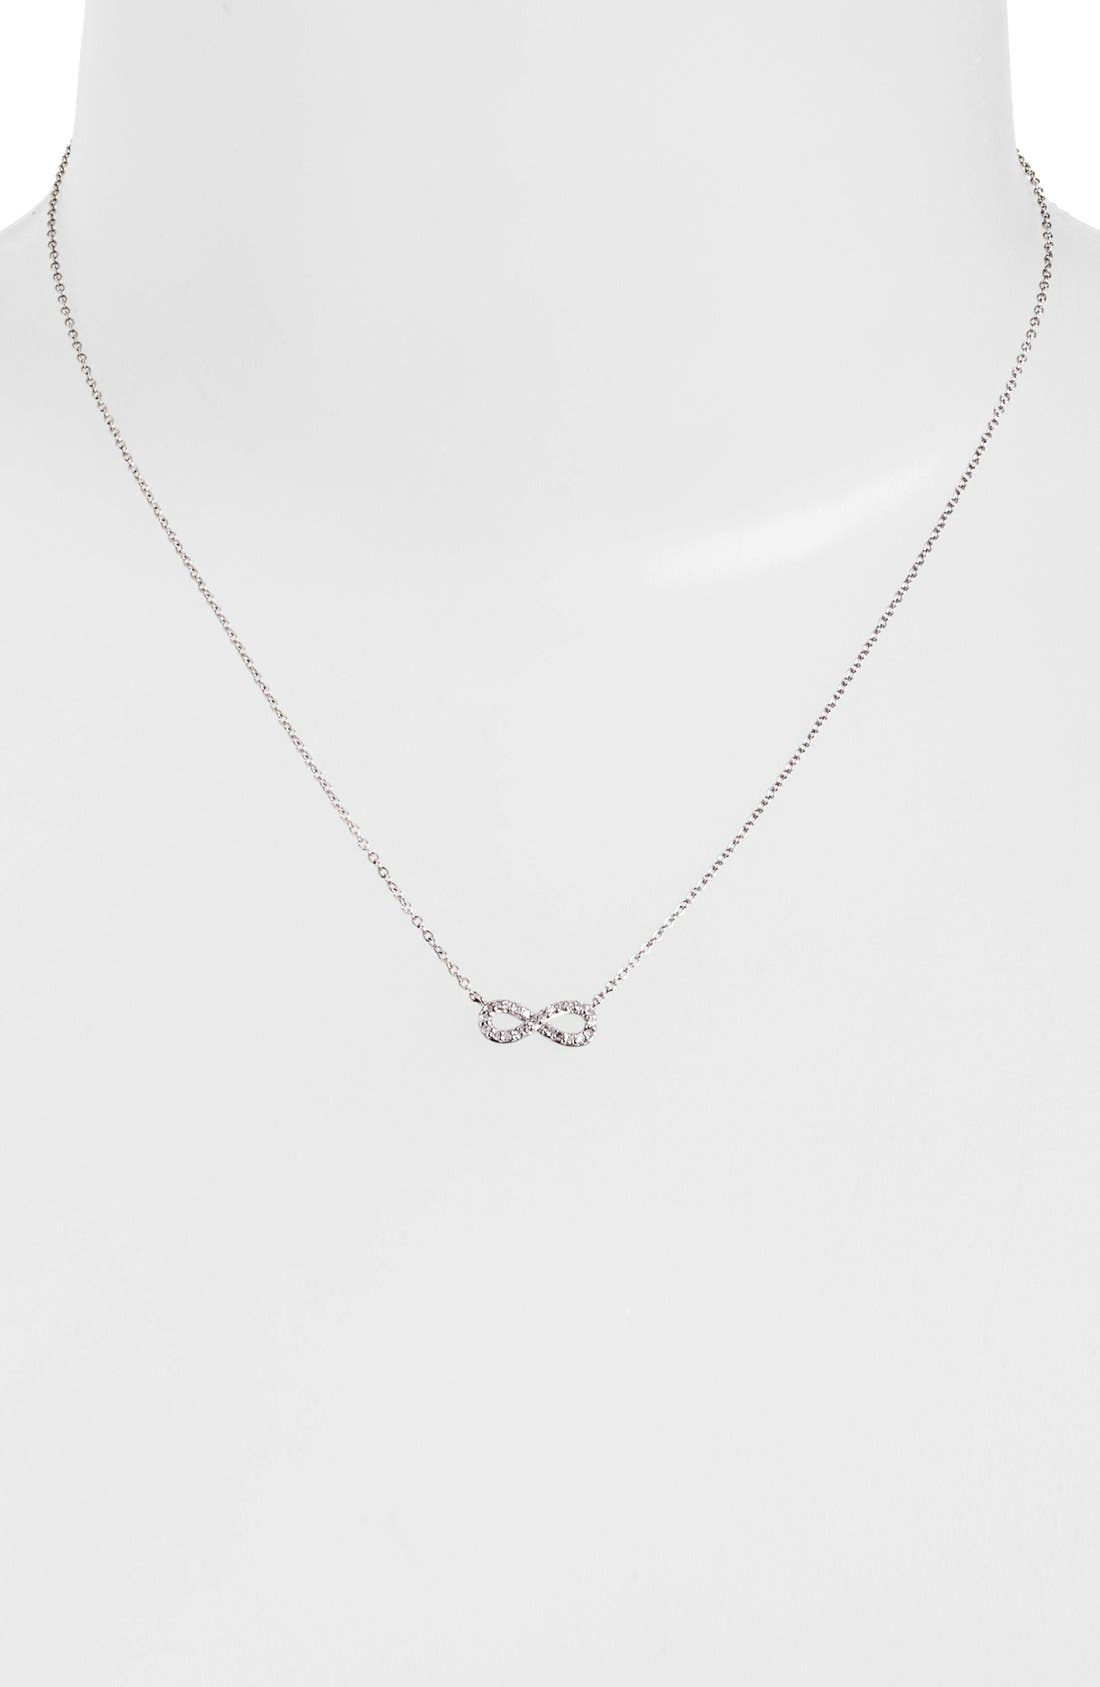 Alternate Image 2  - Adina Reyter Pavé Diamond Infinity Symbol Pendant Necklace (Online Only)